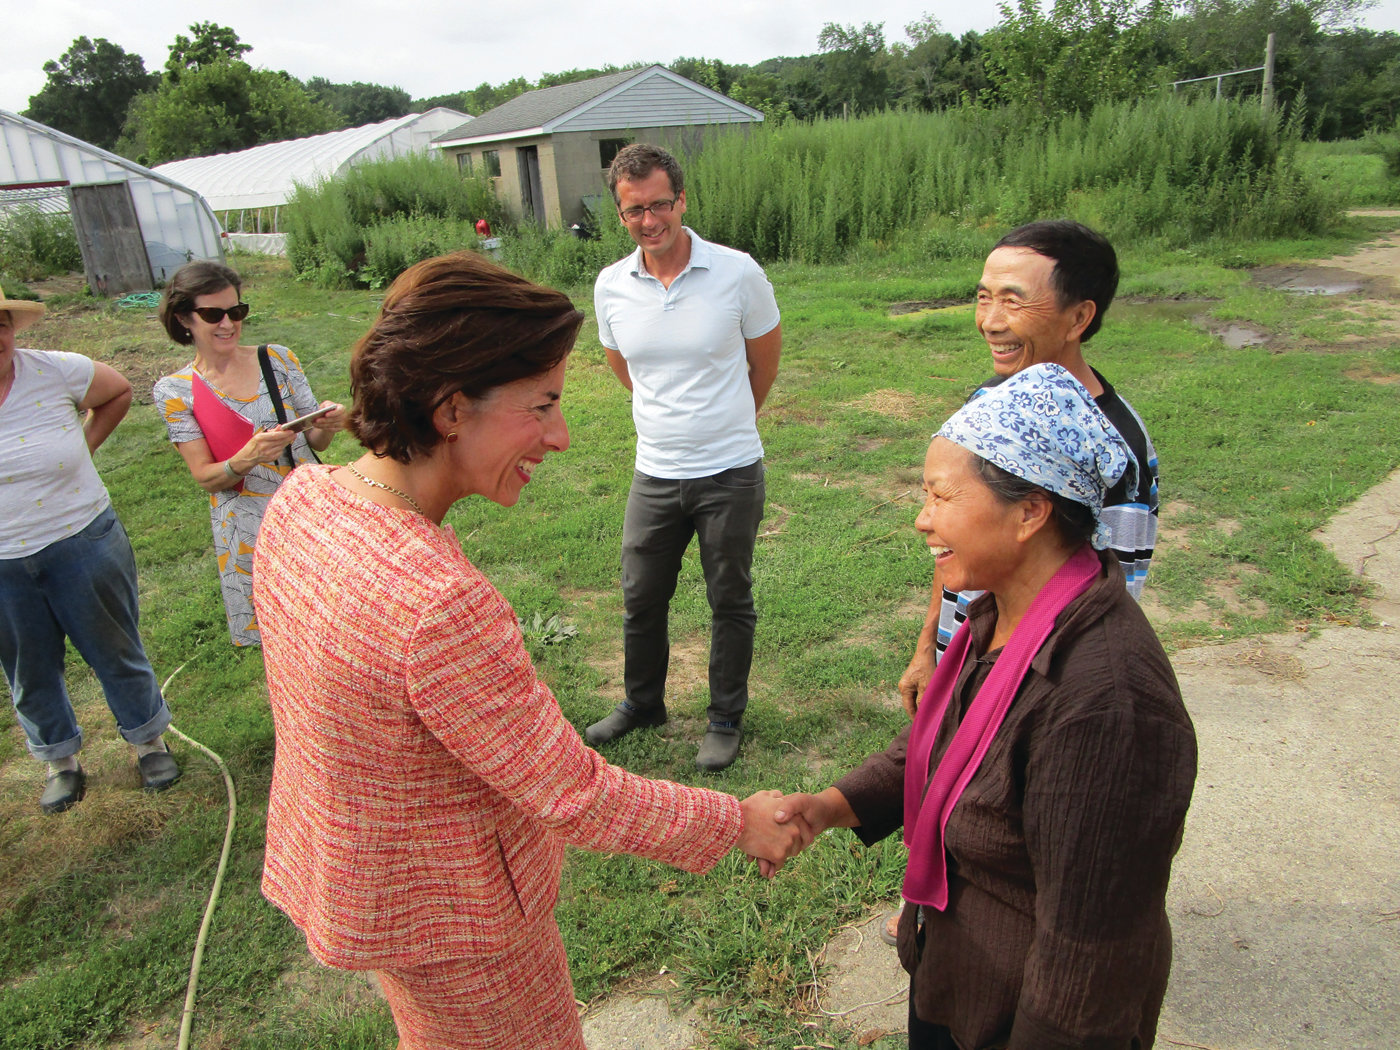 VISIT FROM THE GOVERNOR: Gov. Gina Raimondo greets Kia Xiong and her husband, Choua, during her visit to Urban Edge Farm on Tuesday. The Xiongs operate Greenleaf Farm and are among the growers for Sanctuary Herbs of Providence.